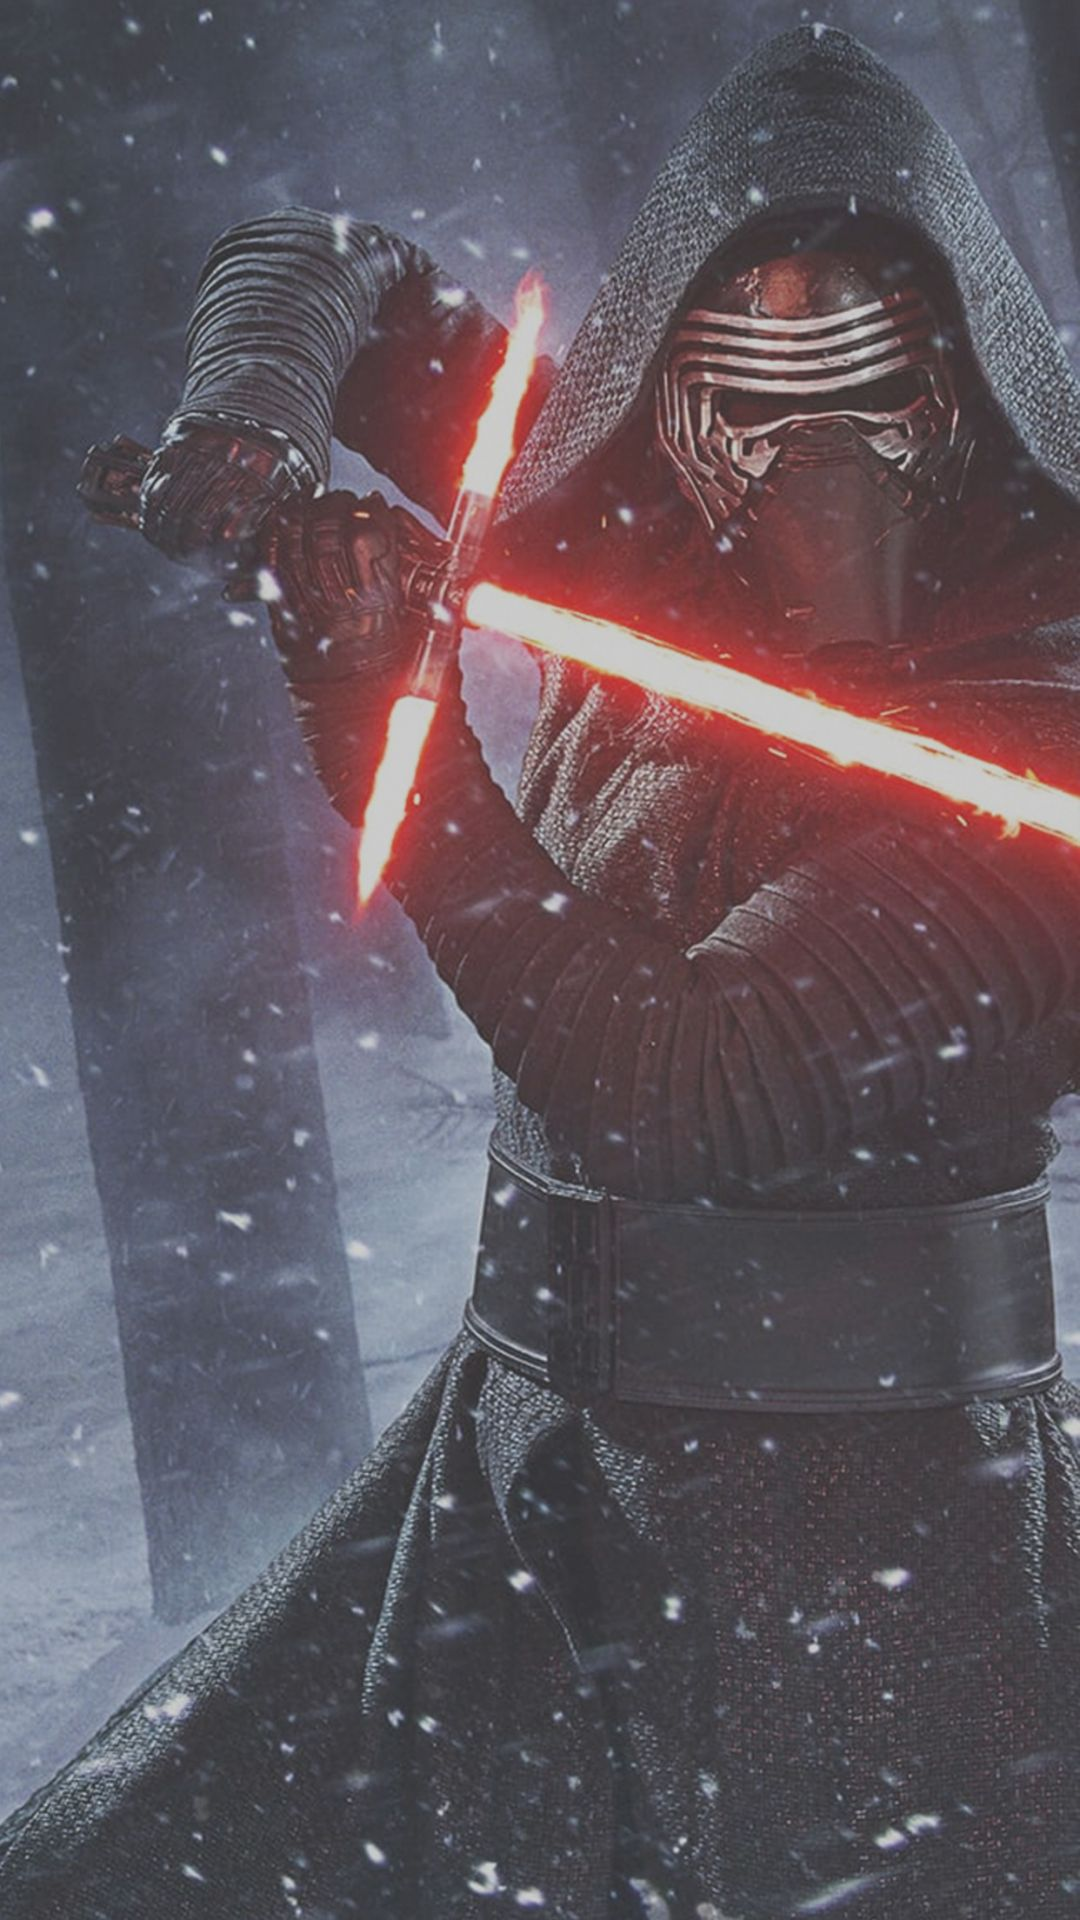 Kylo Ren - Android, iPhone, Desktop HD Backgrounds / Wallpapers (1080p, 4k) (408541) - Movies / TV